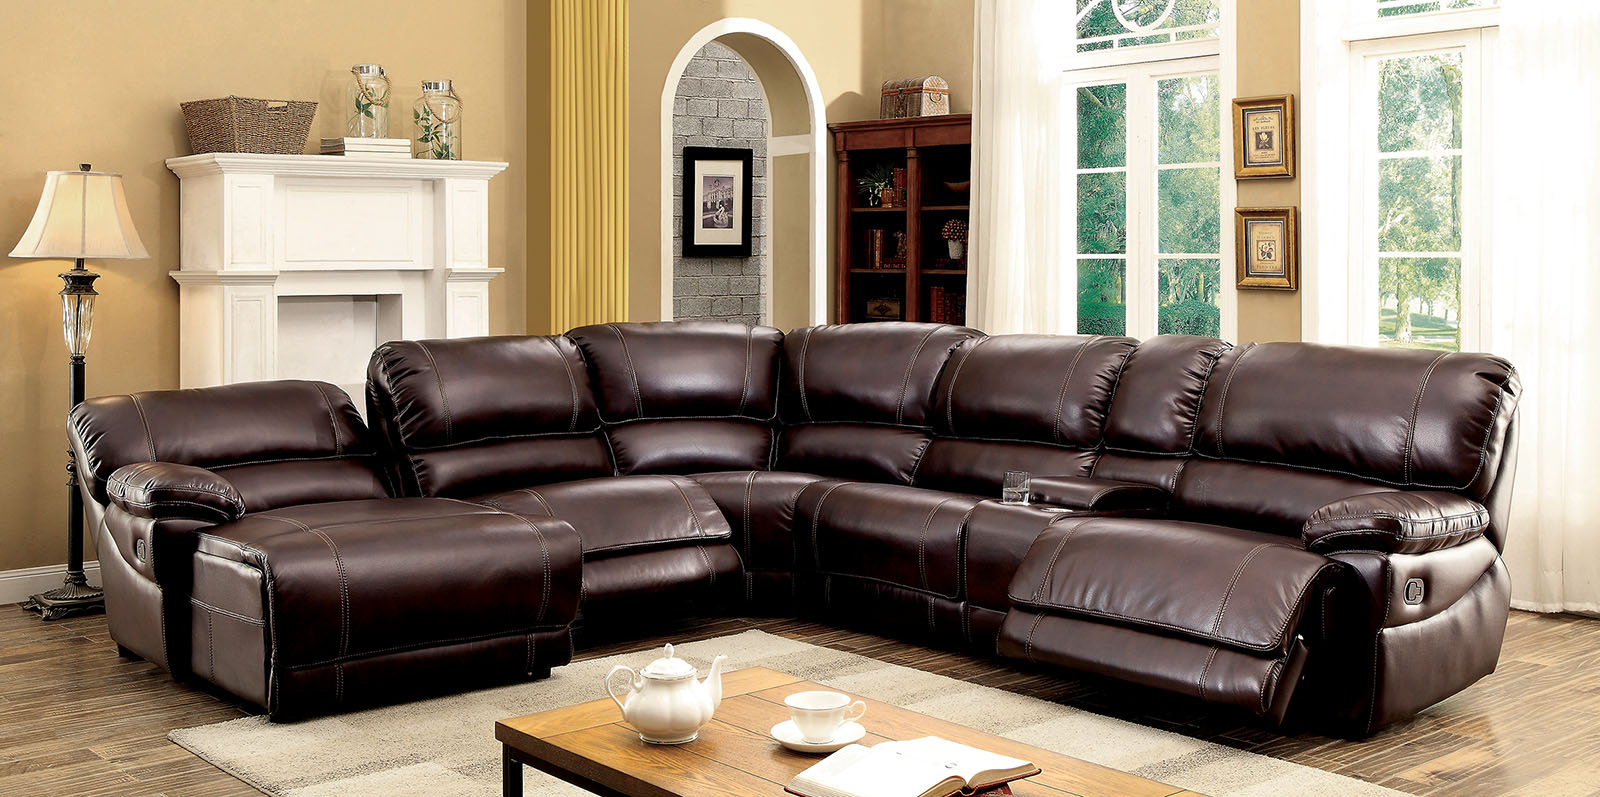 Furniture of America 6131BR Brown Reclining chaise console